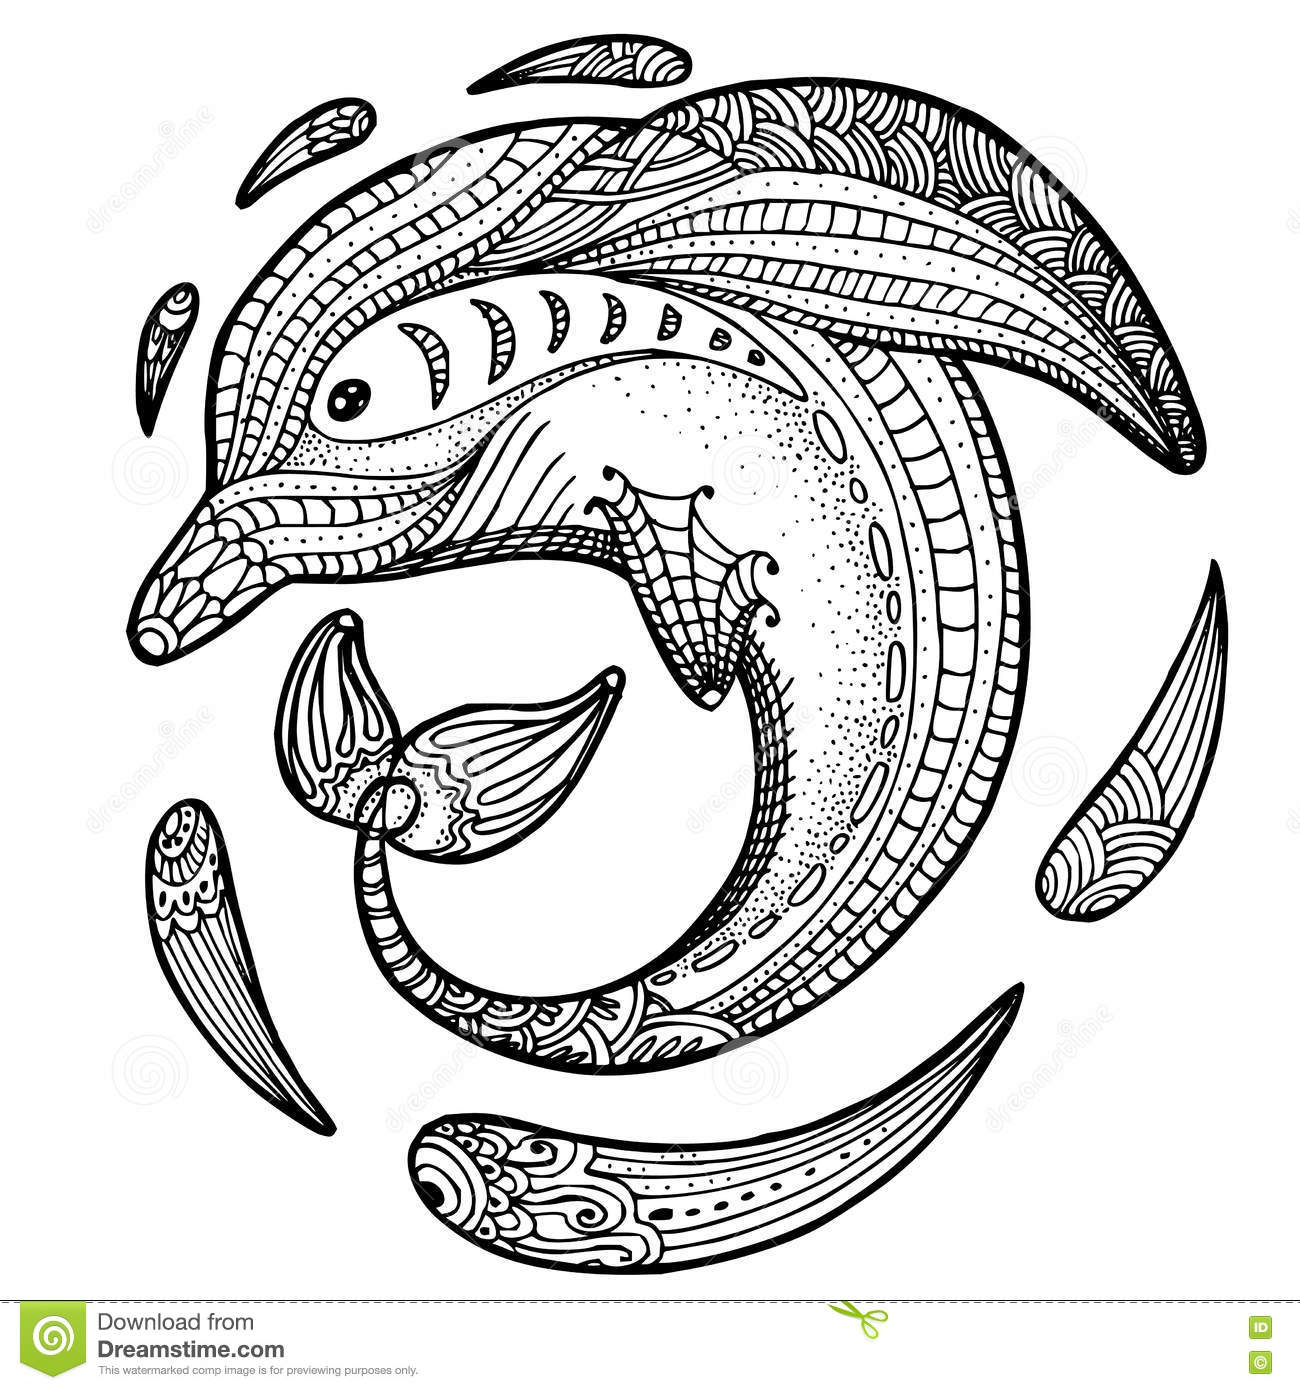 Stress Coloring Pages Animals : Zentangle stylized dolphin adult anti stress coloring